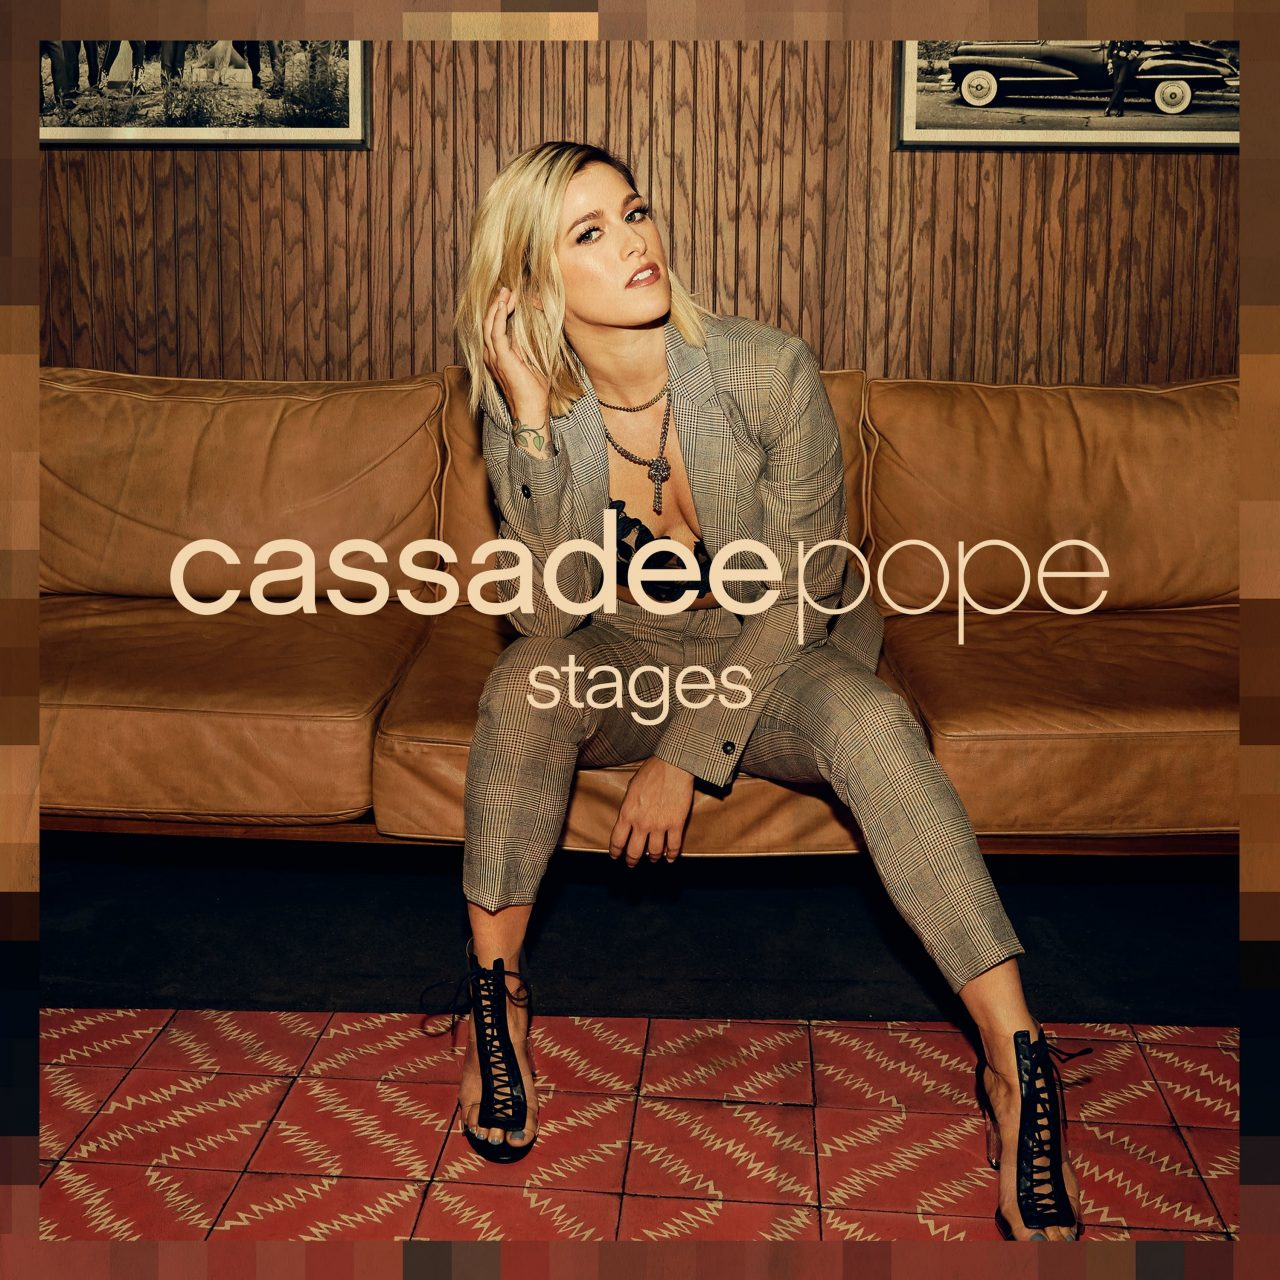 Cassadee Pope Announces New Album, 'Stages'